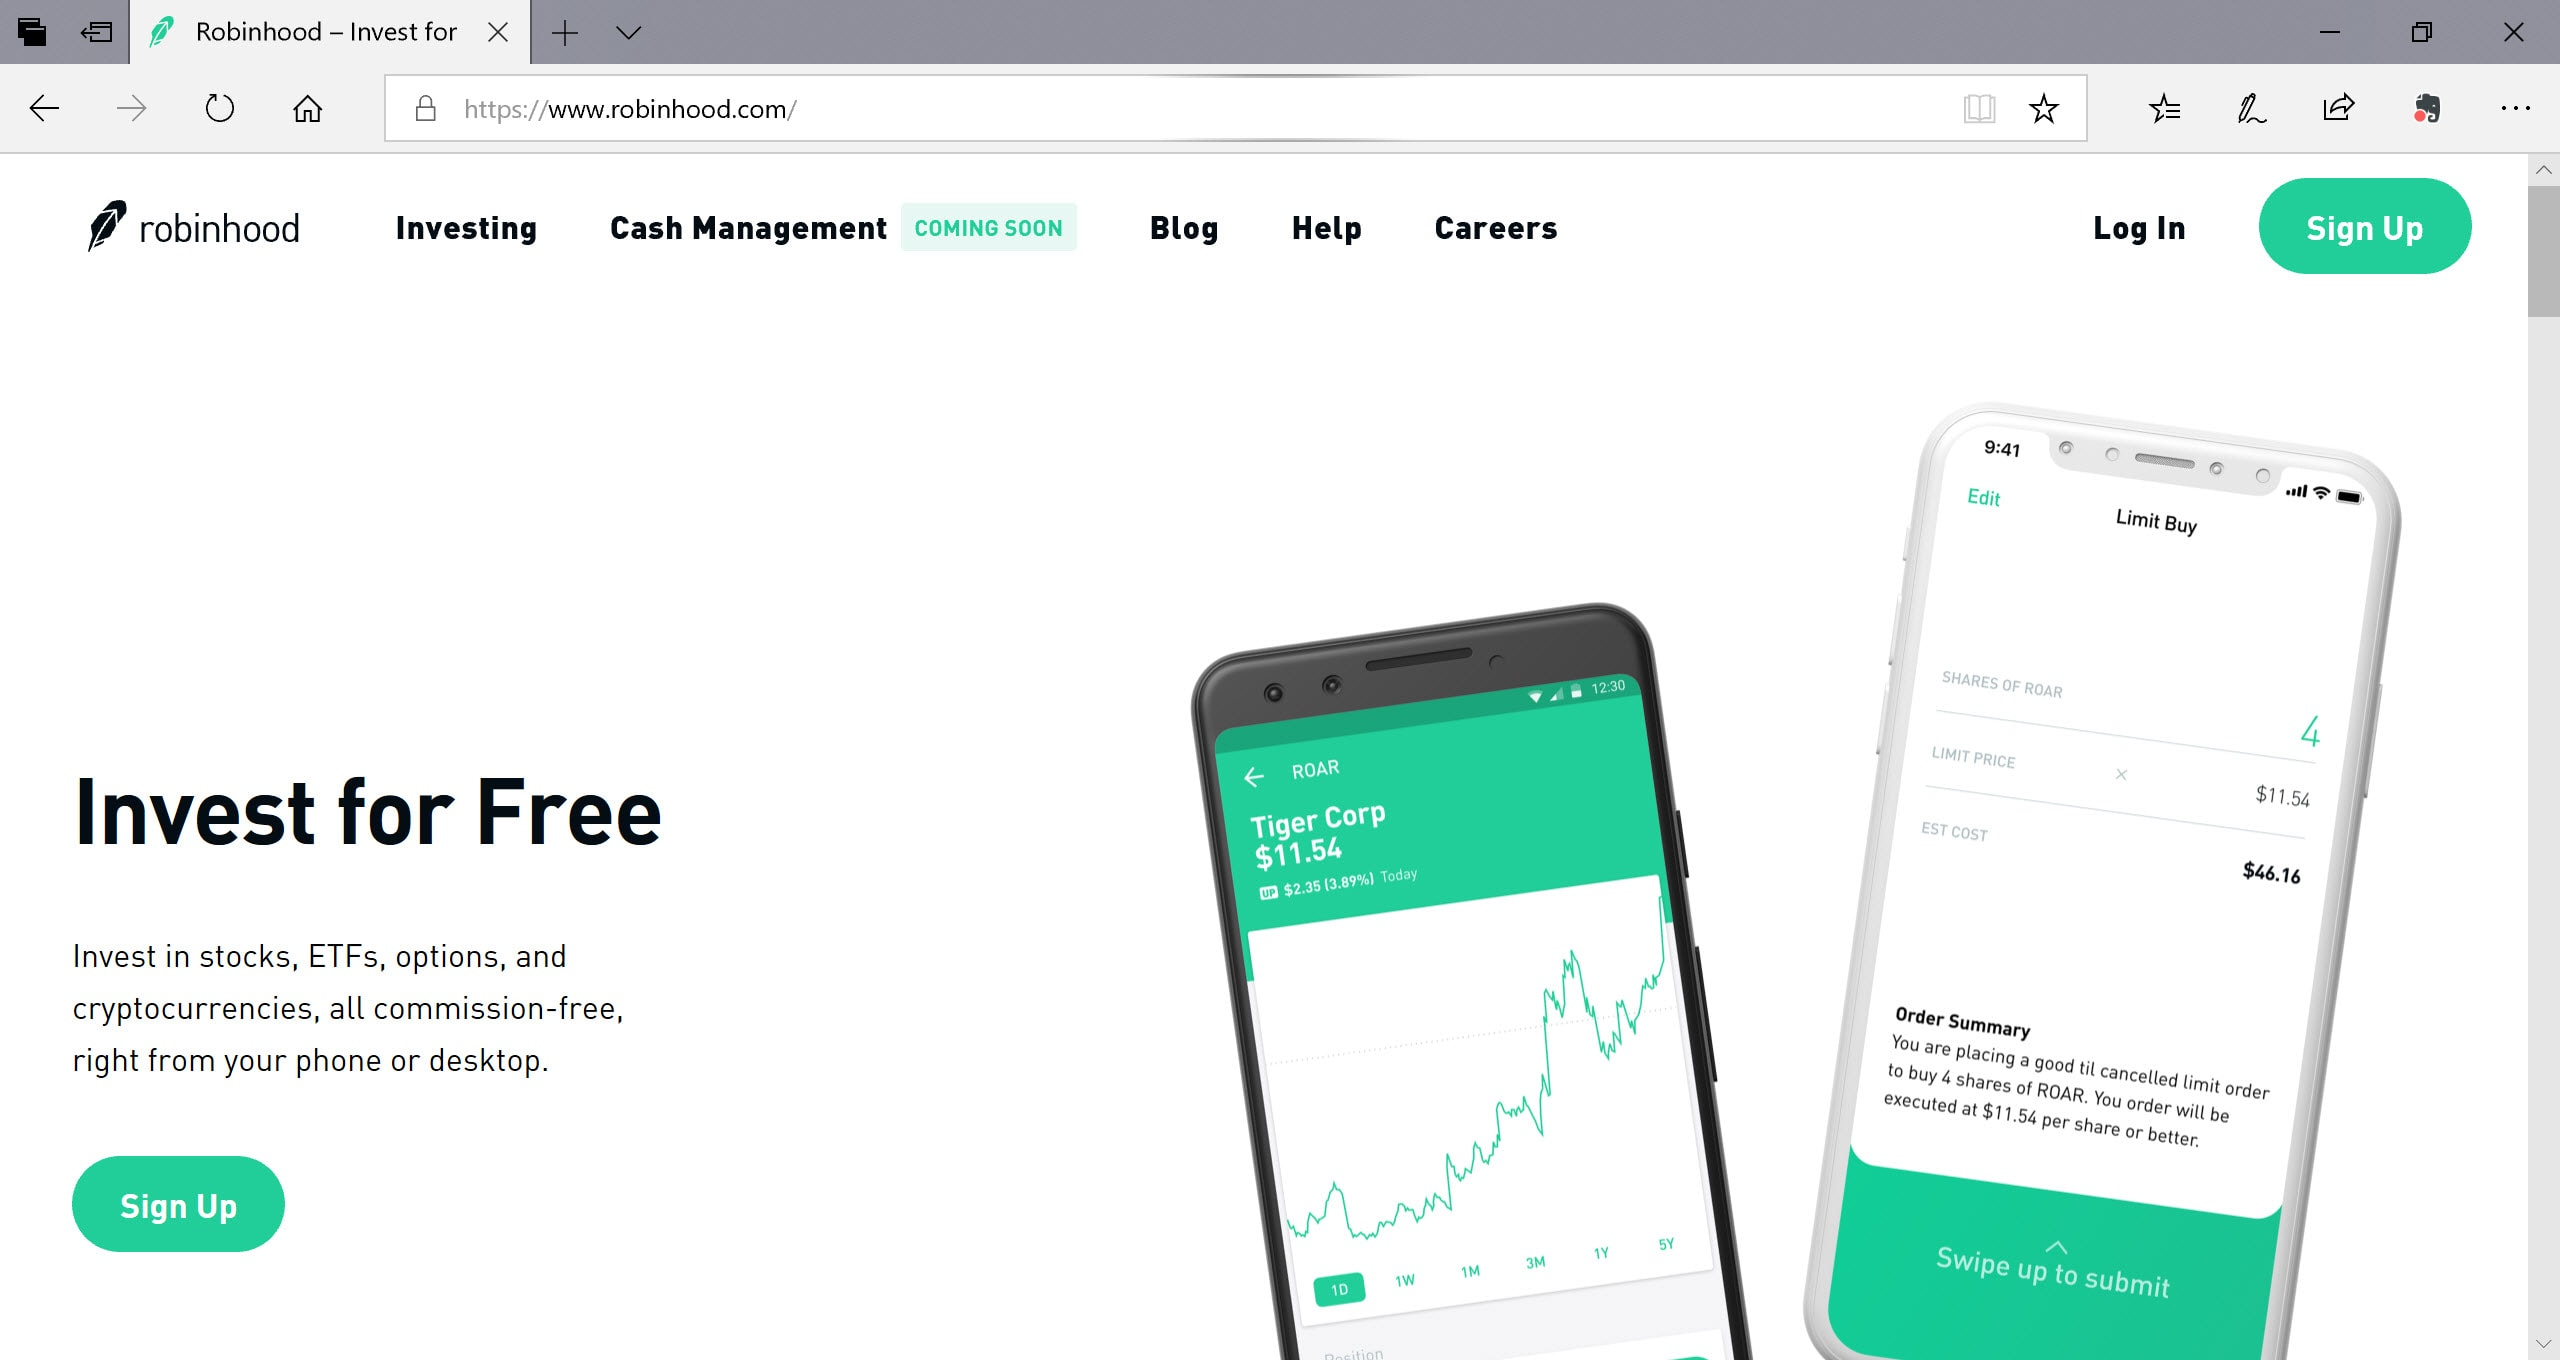 Robinhood Commission-Free Investing Deals Amazon July 2020